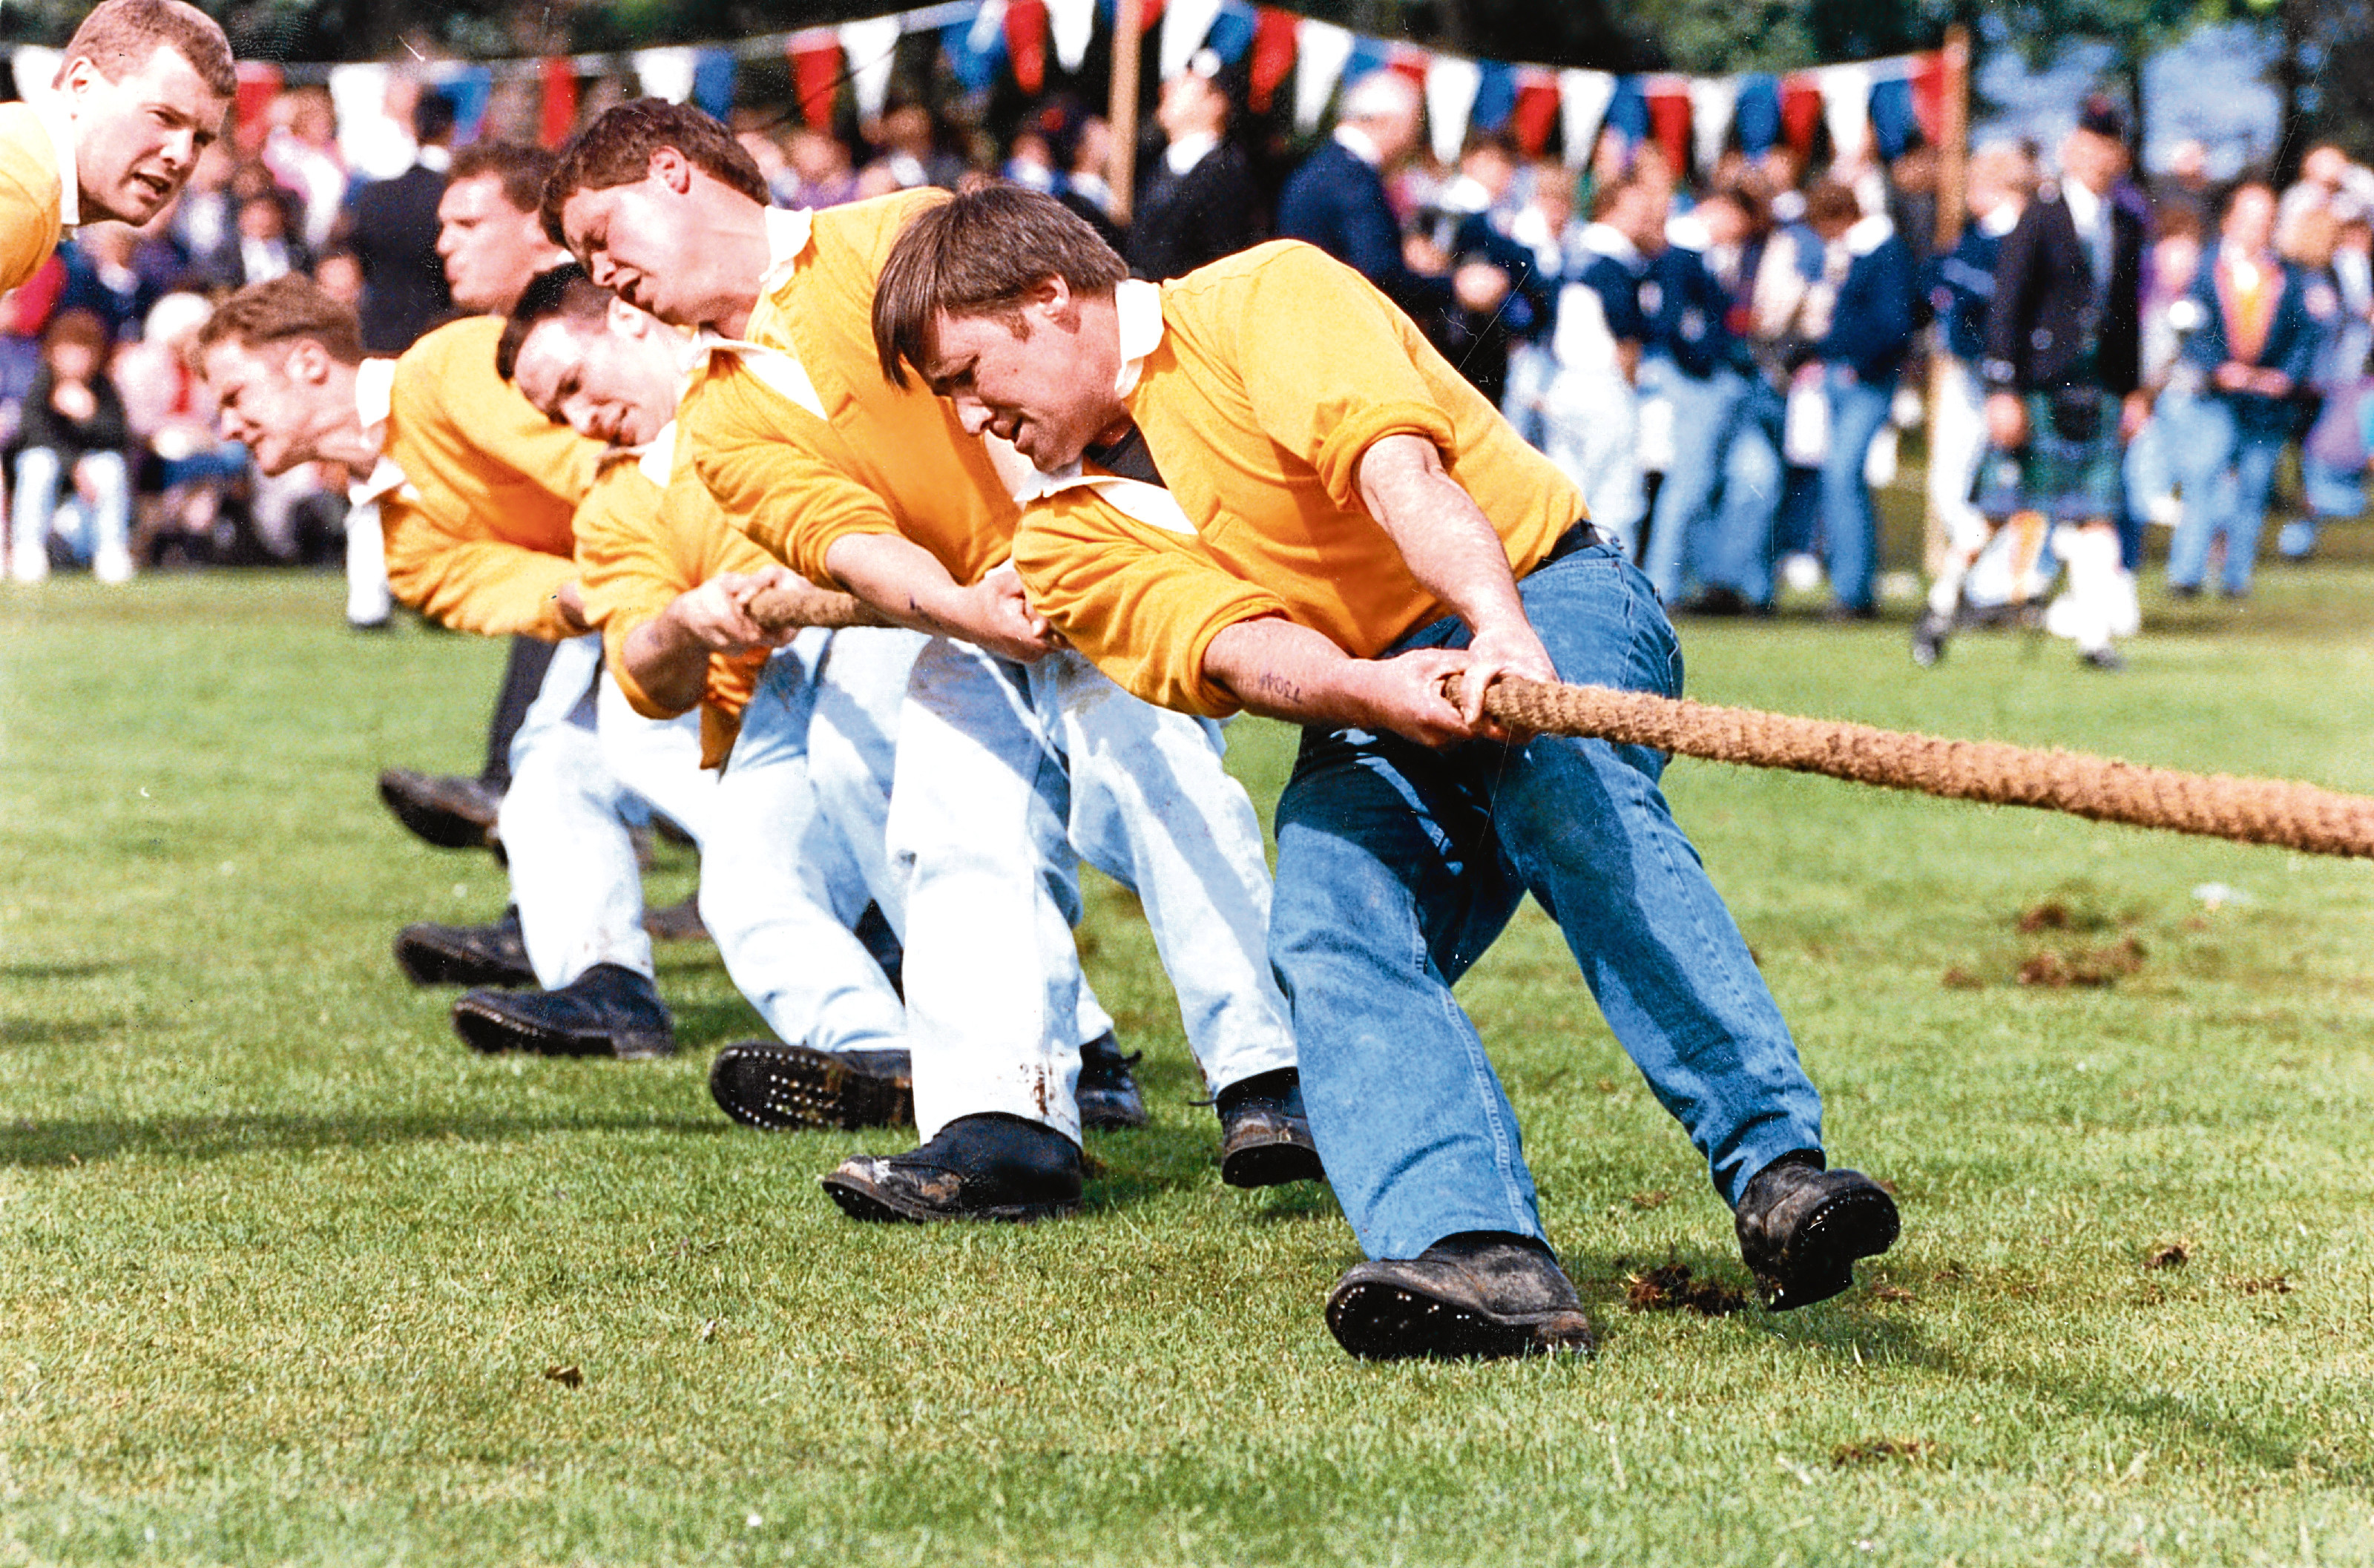 Cornhill Gordon Arms Hotel tug o' war team in action at the Oldmeldrum games